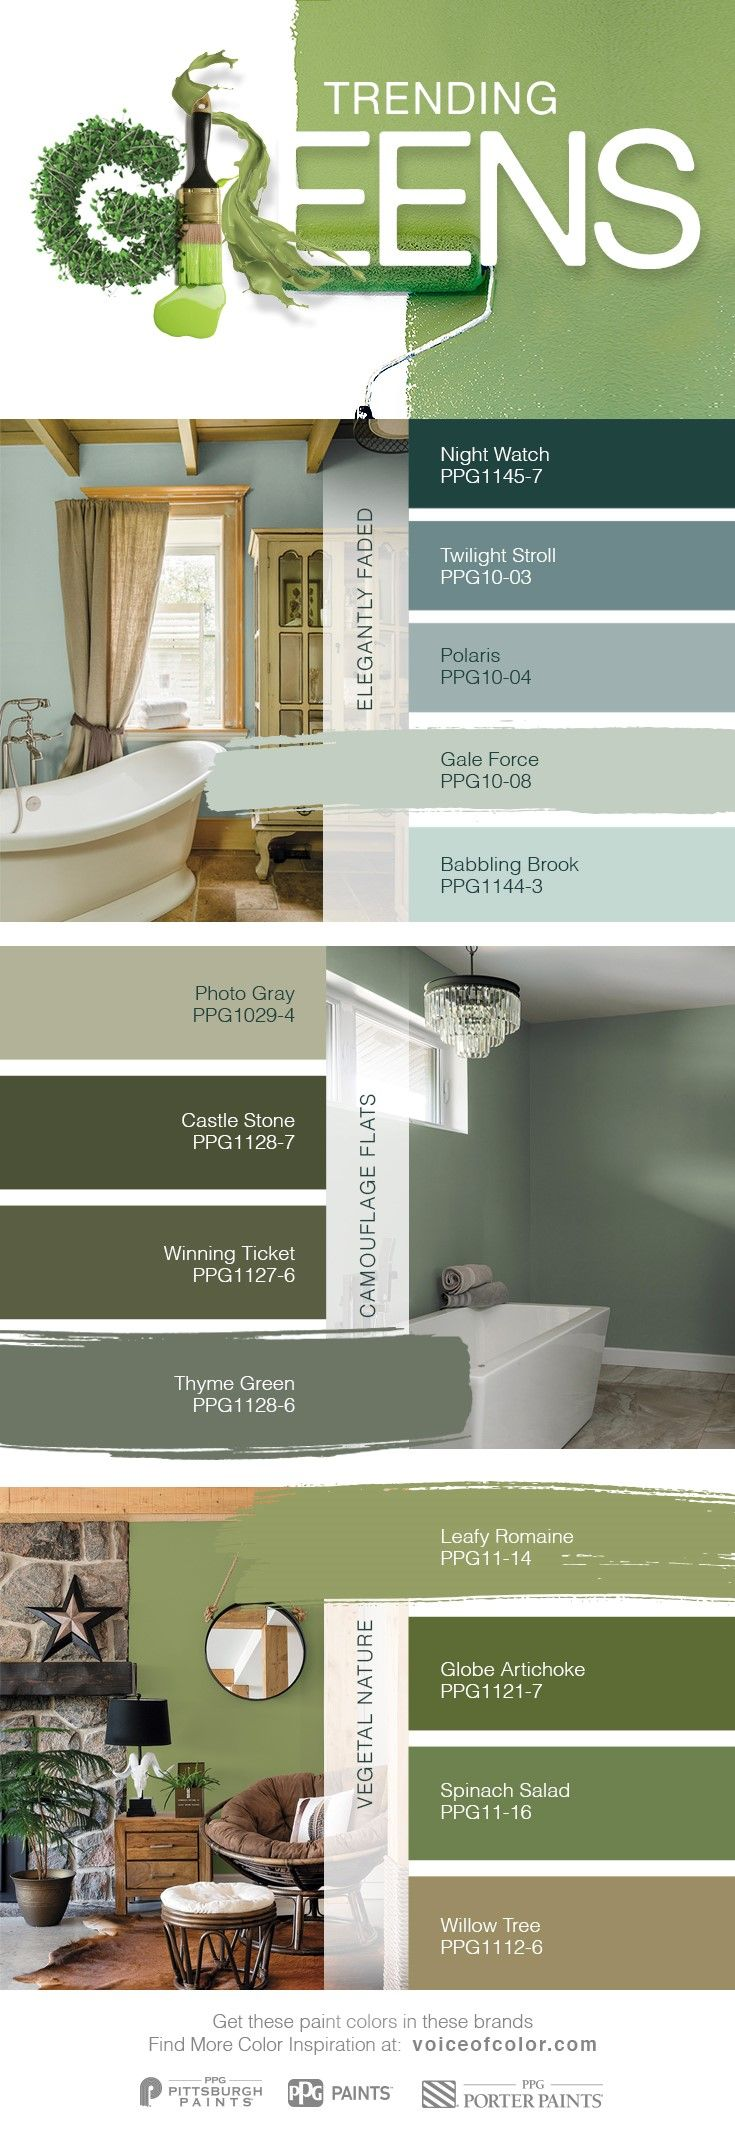 431 best Paint Colors images on Pinterest | Paint colors, Color ...